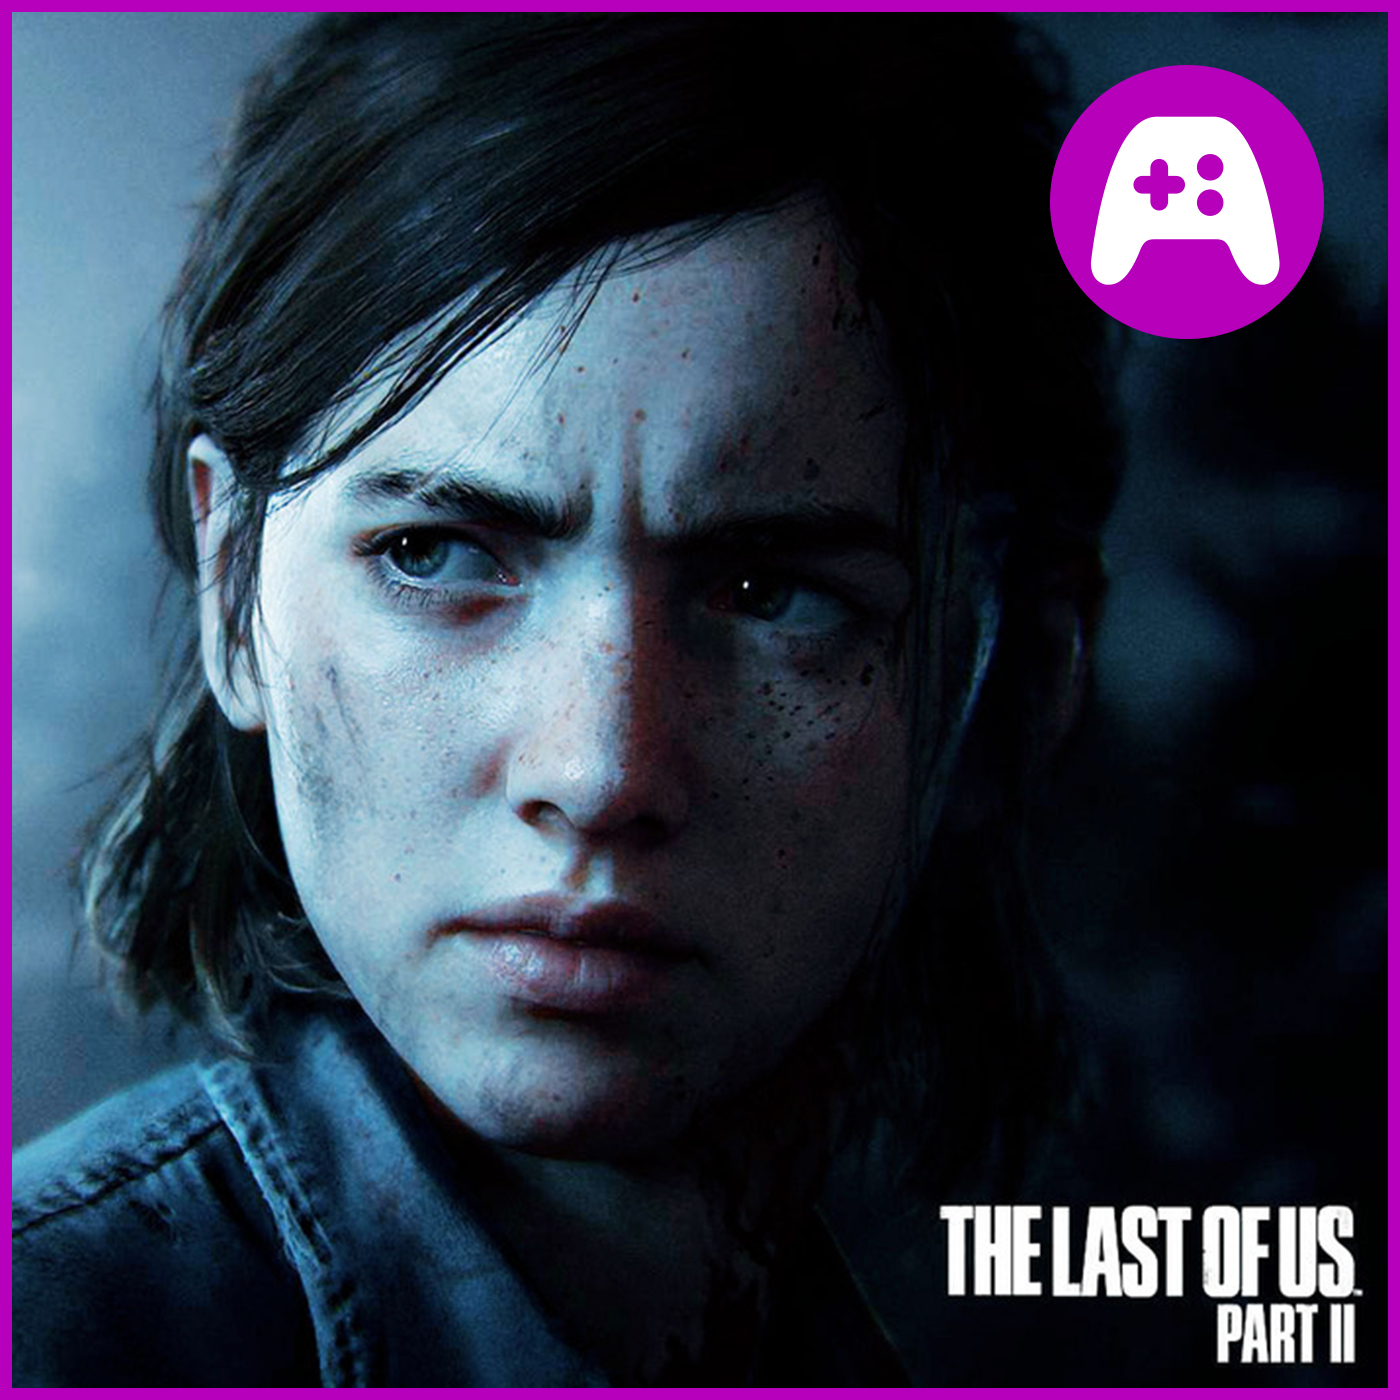 The Last of Us 2 Made Me Angry - What's Good Games (Ep. 167)